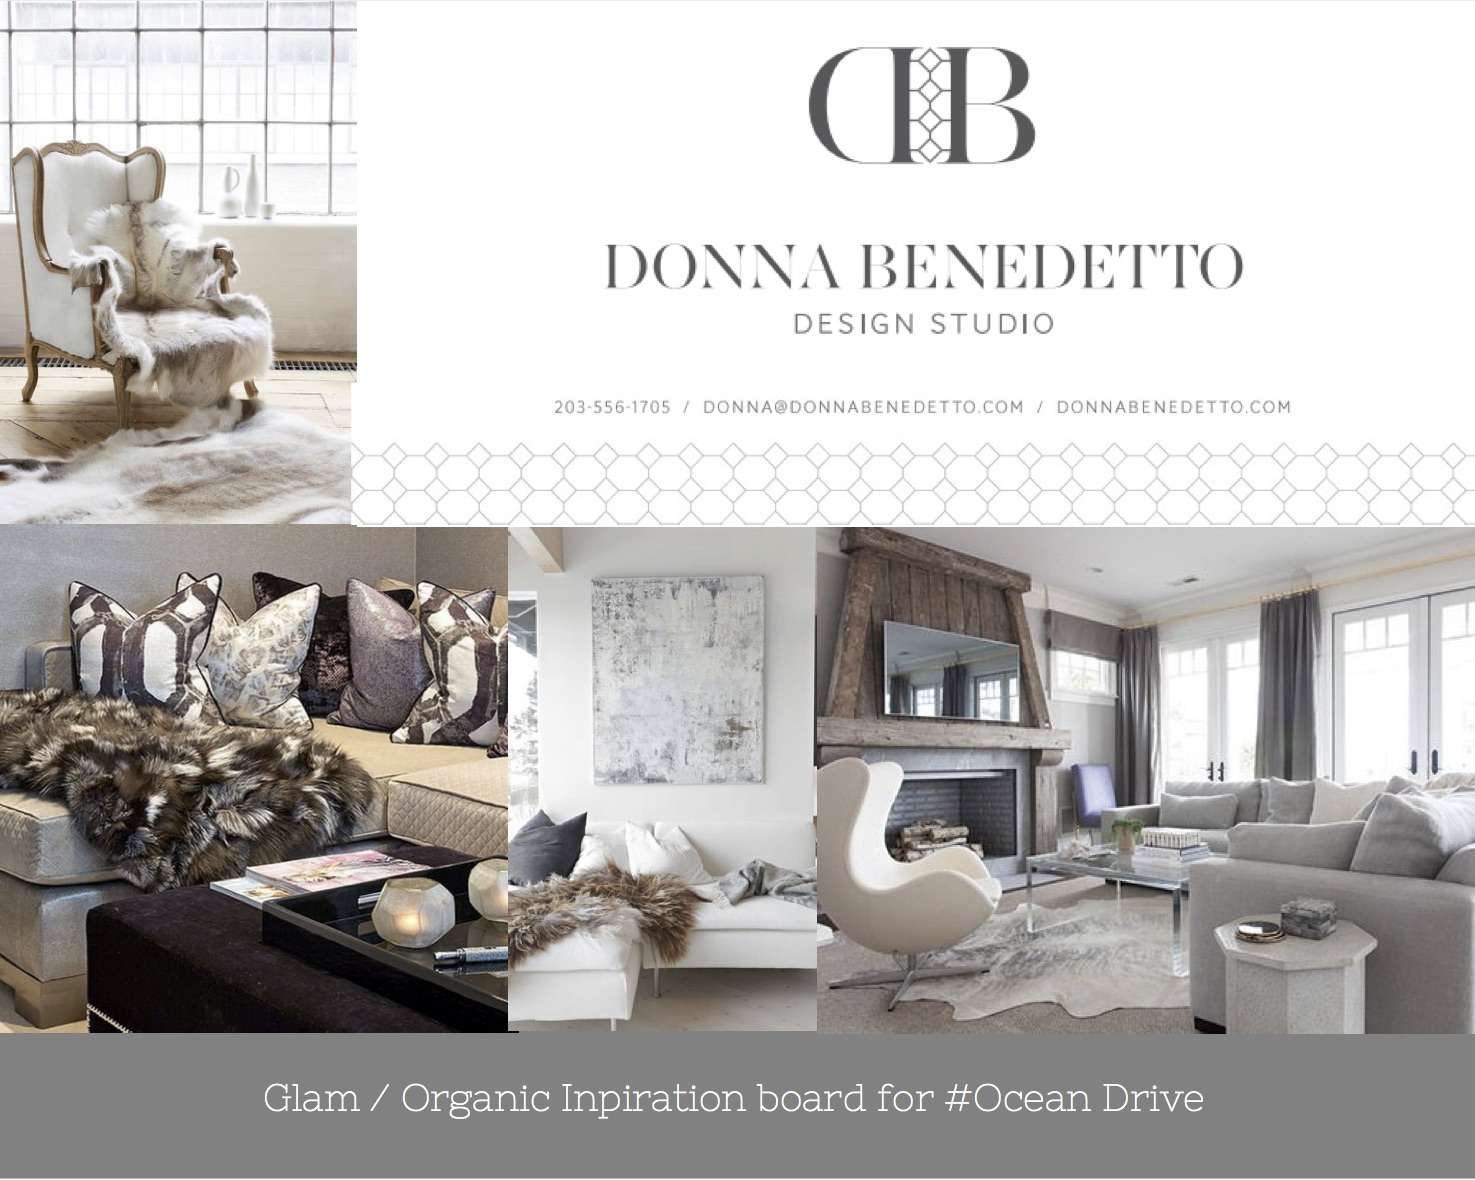 Client inspiration board for a refresh to the clients basement space.  We are going for a Glam / Organic feel layered and luxe.  Slightly Scandinavian meets the Hamptons with glamours touches added throughout.  Totally  my style and cannot wait to see this one come to life!  Above images all from Pinterest.